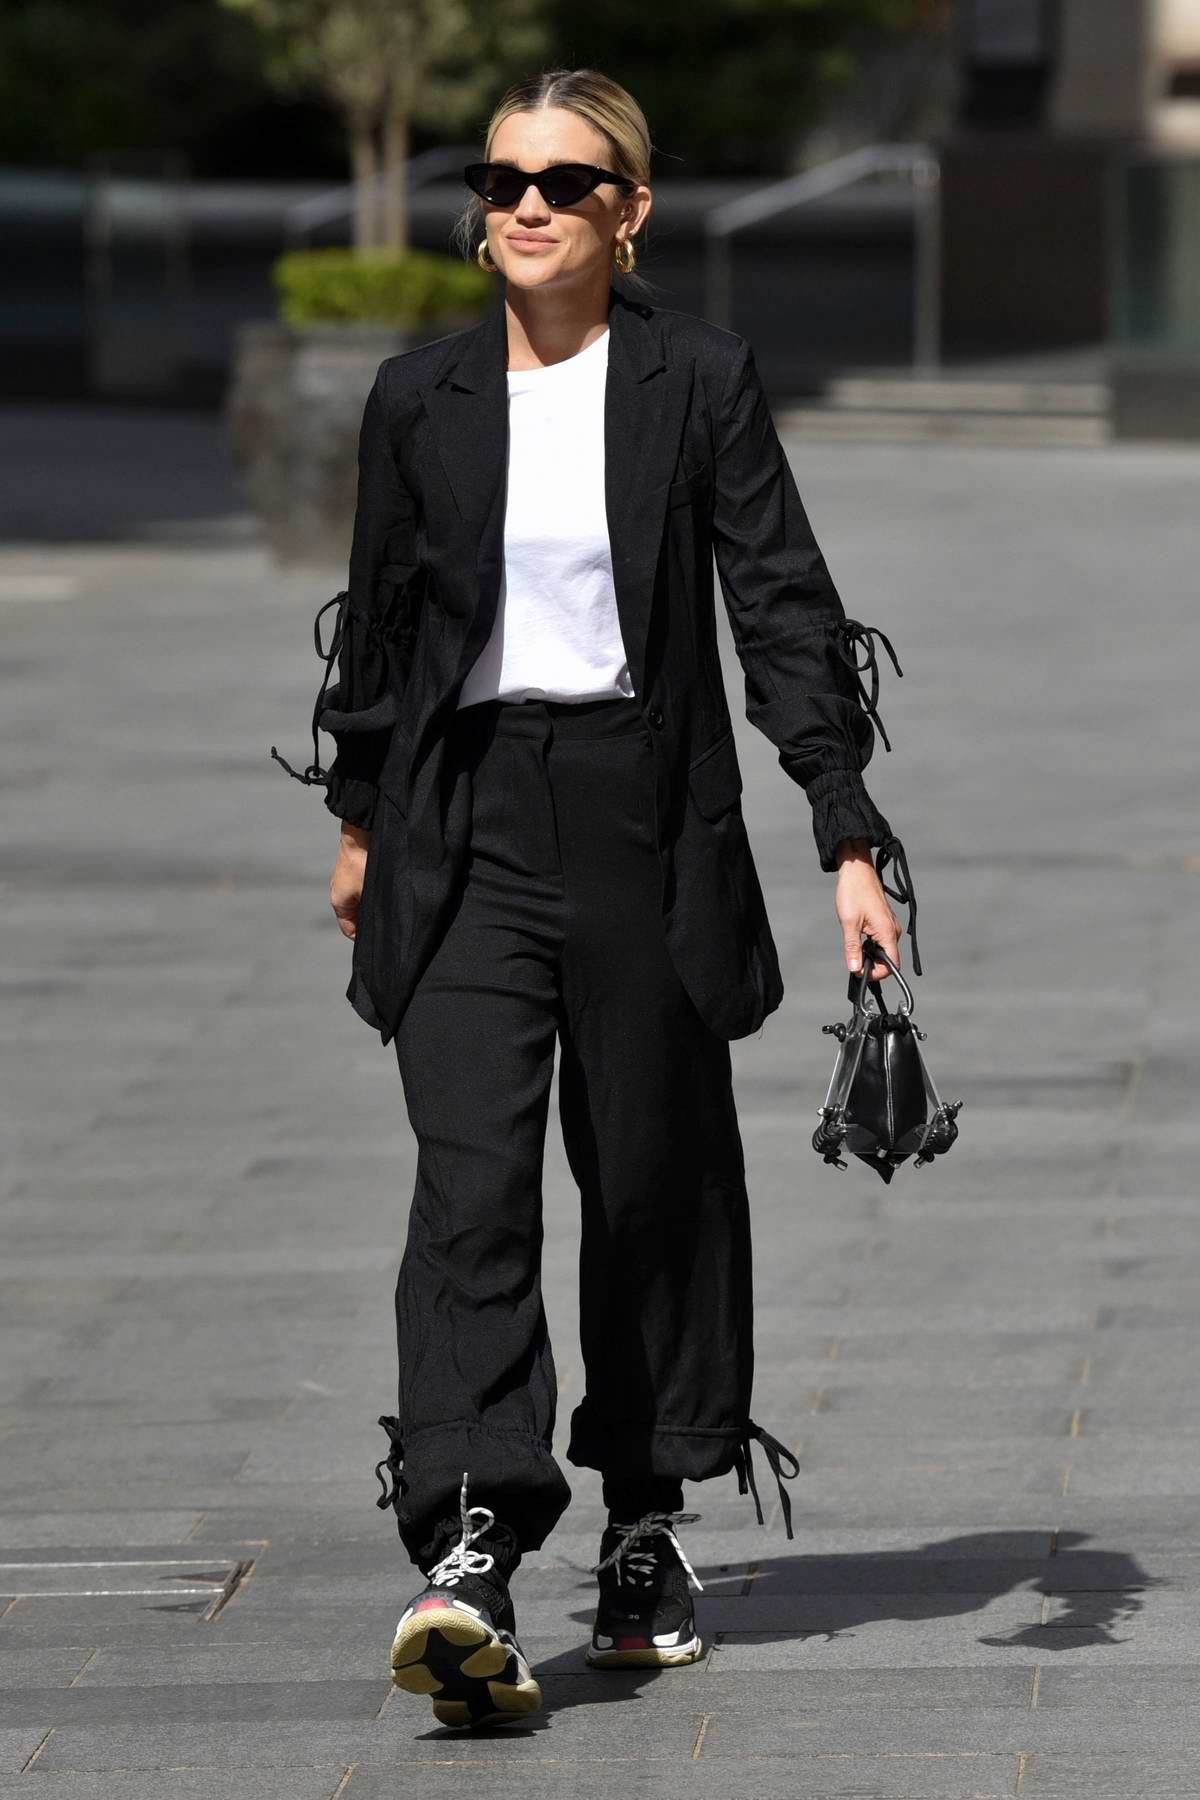 Ashley Roberts seen wearing black pantsuit as she leaves after her Heart Radio show in London, UK